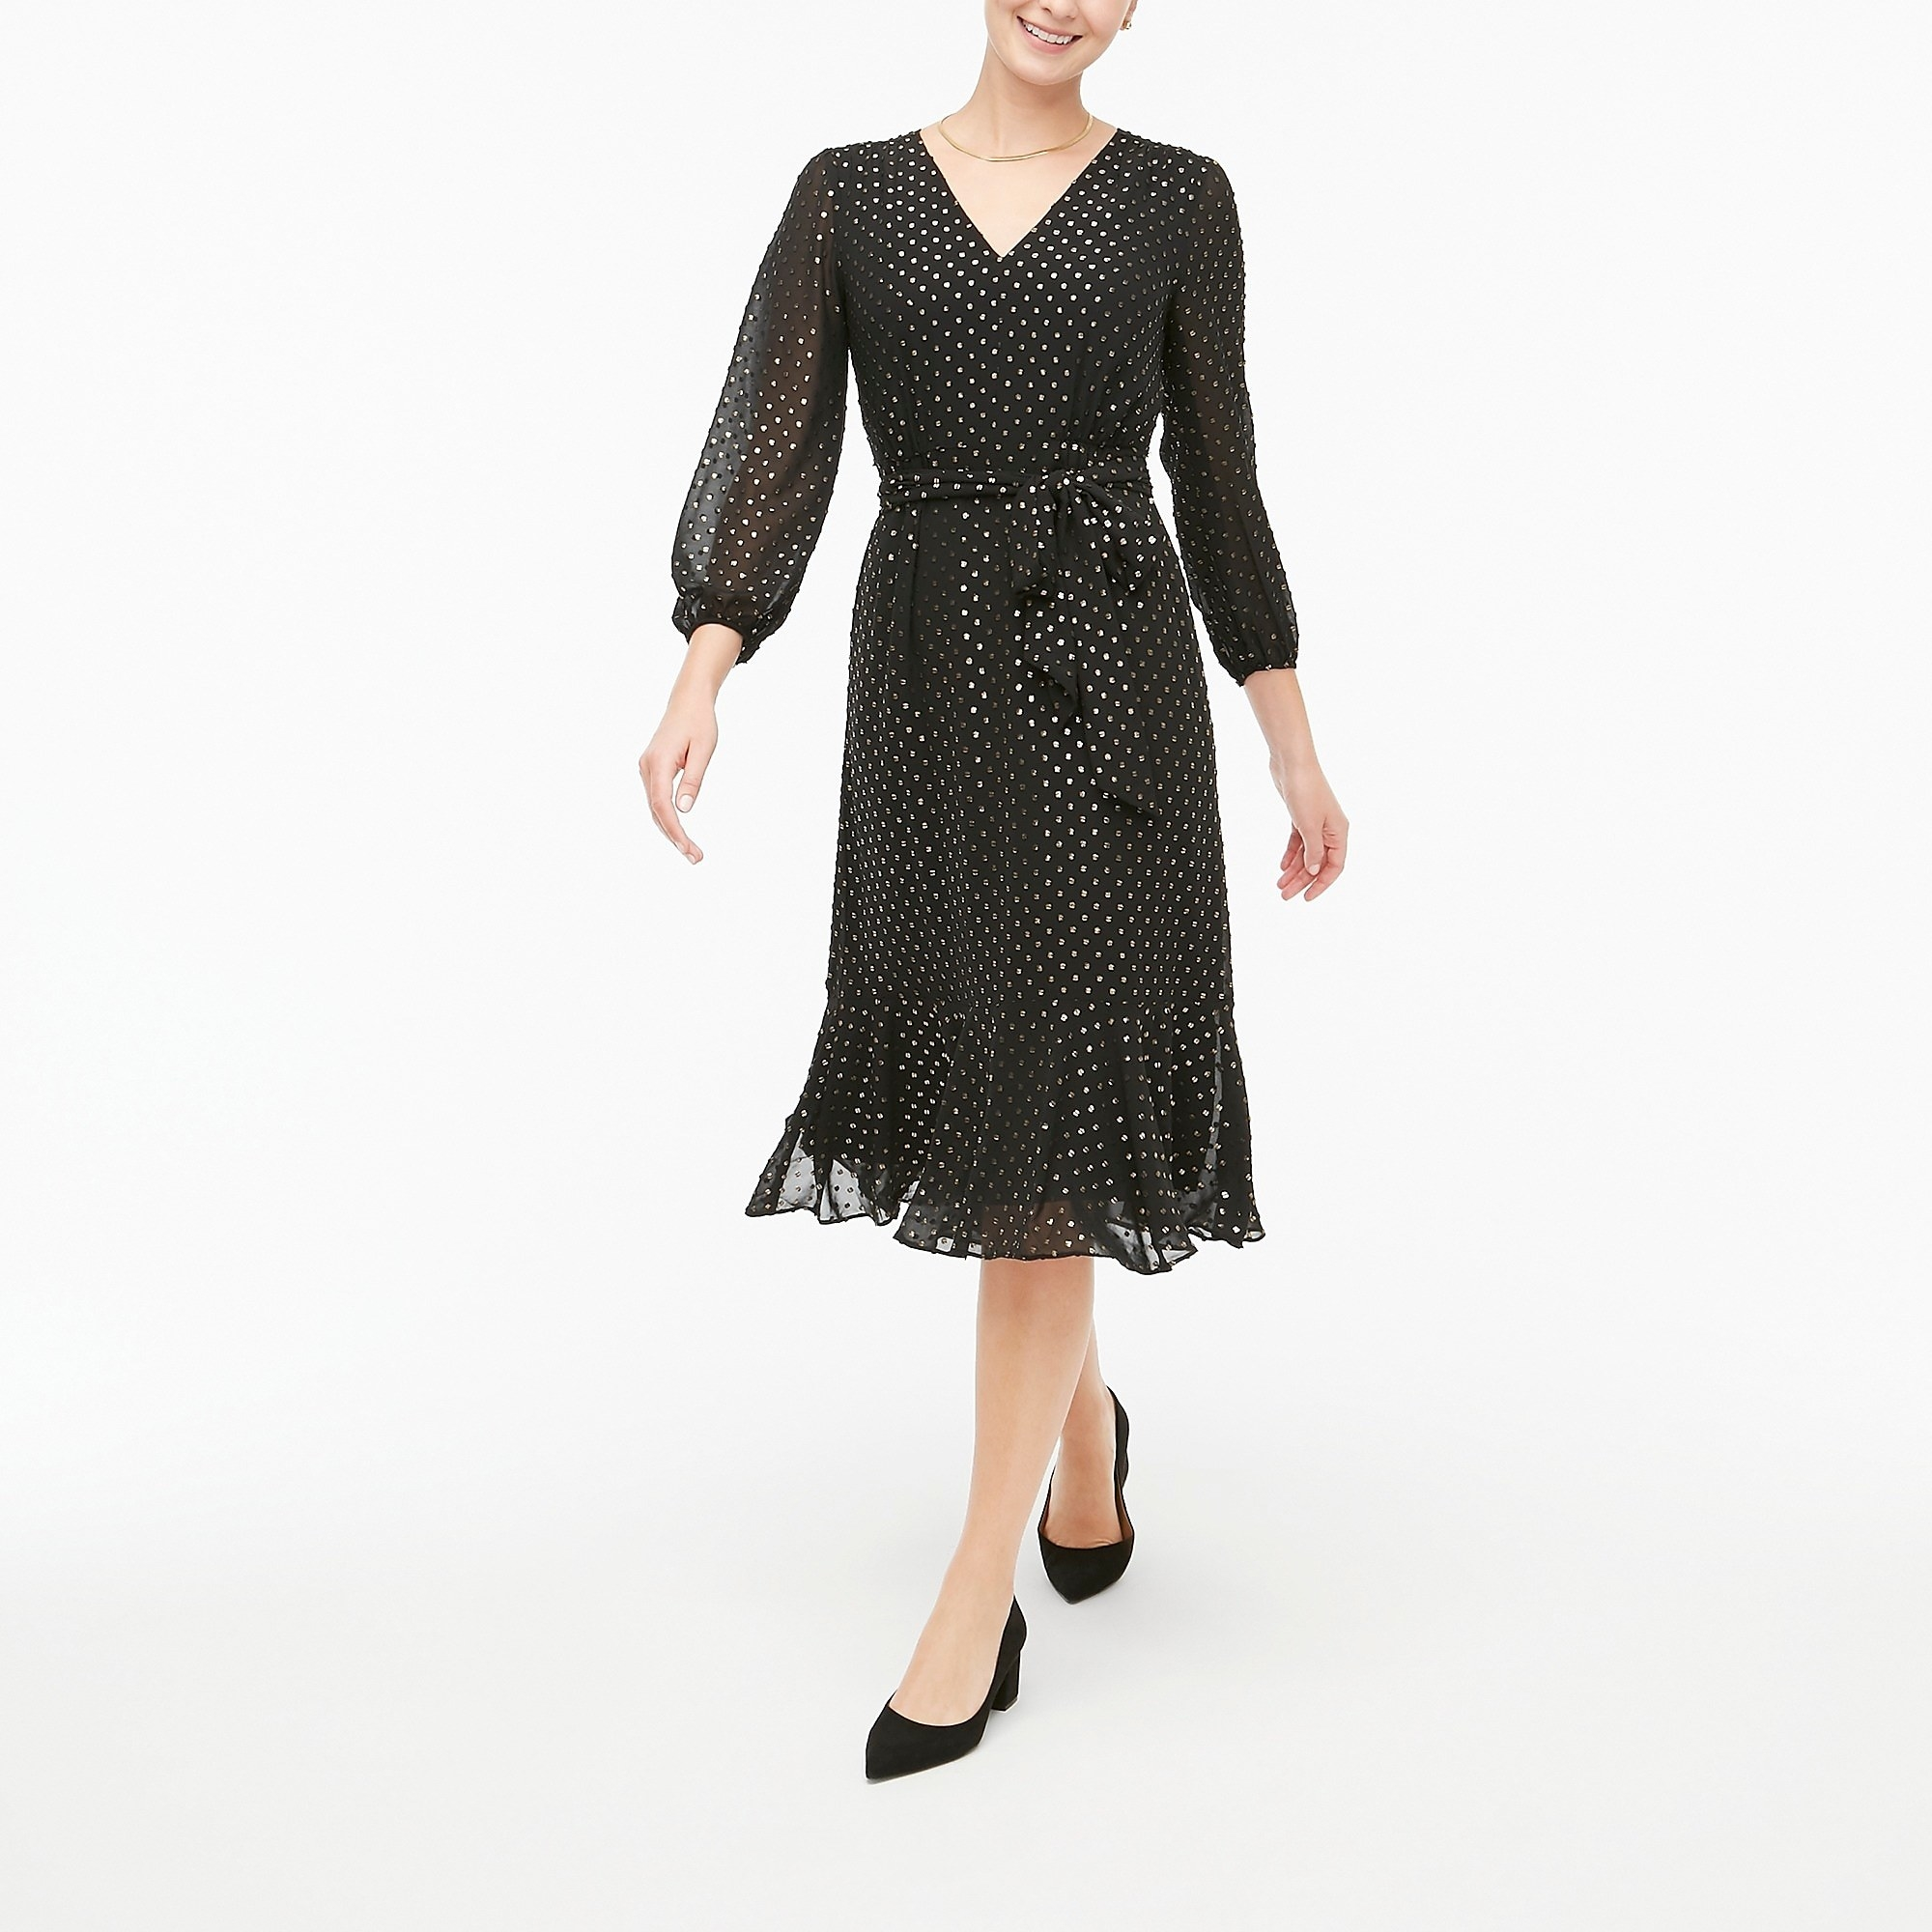 The black dress with shiny silver dots